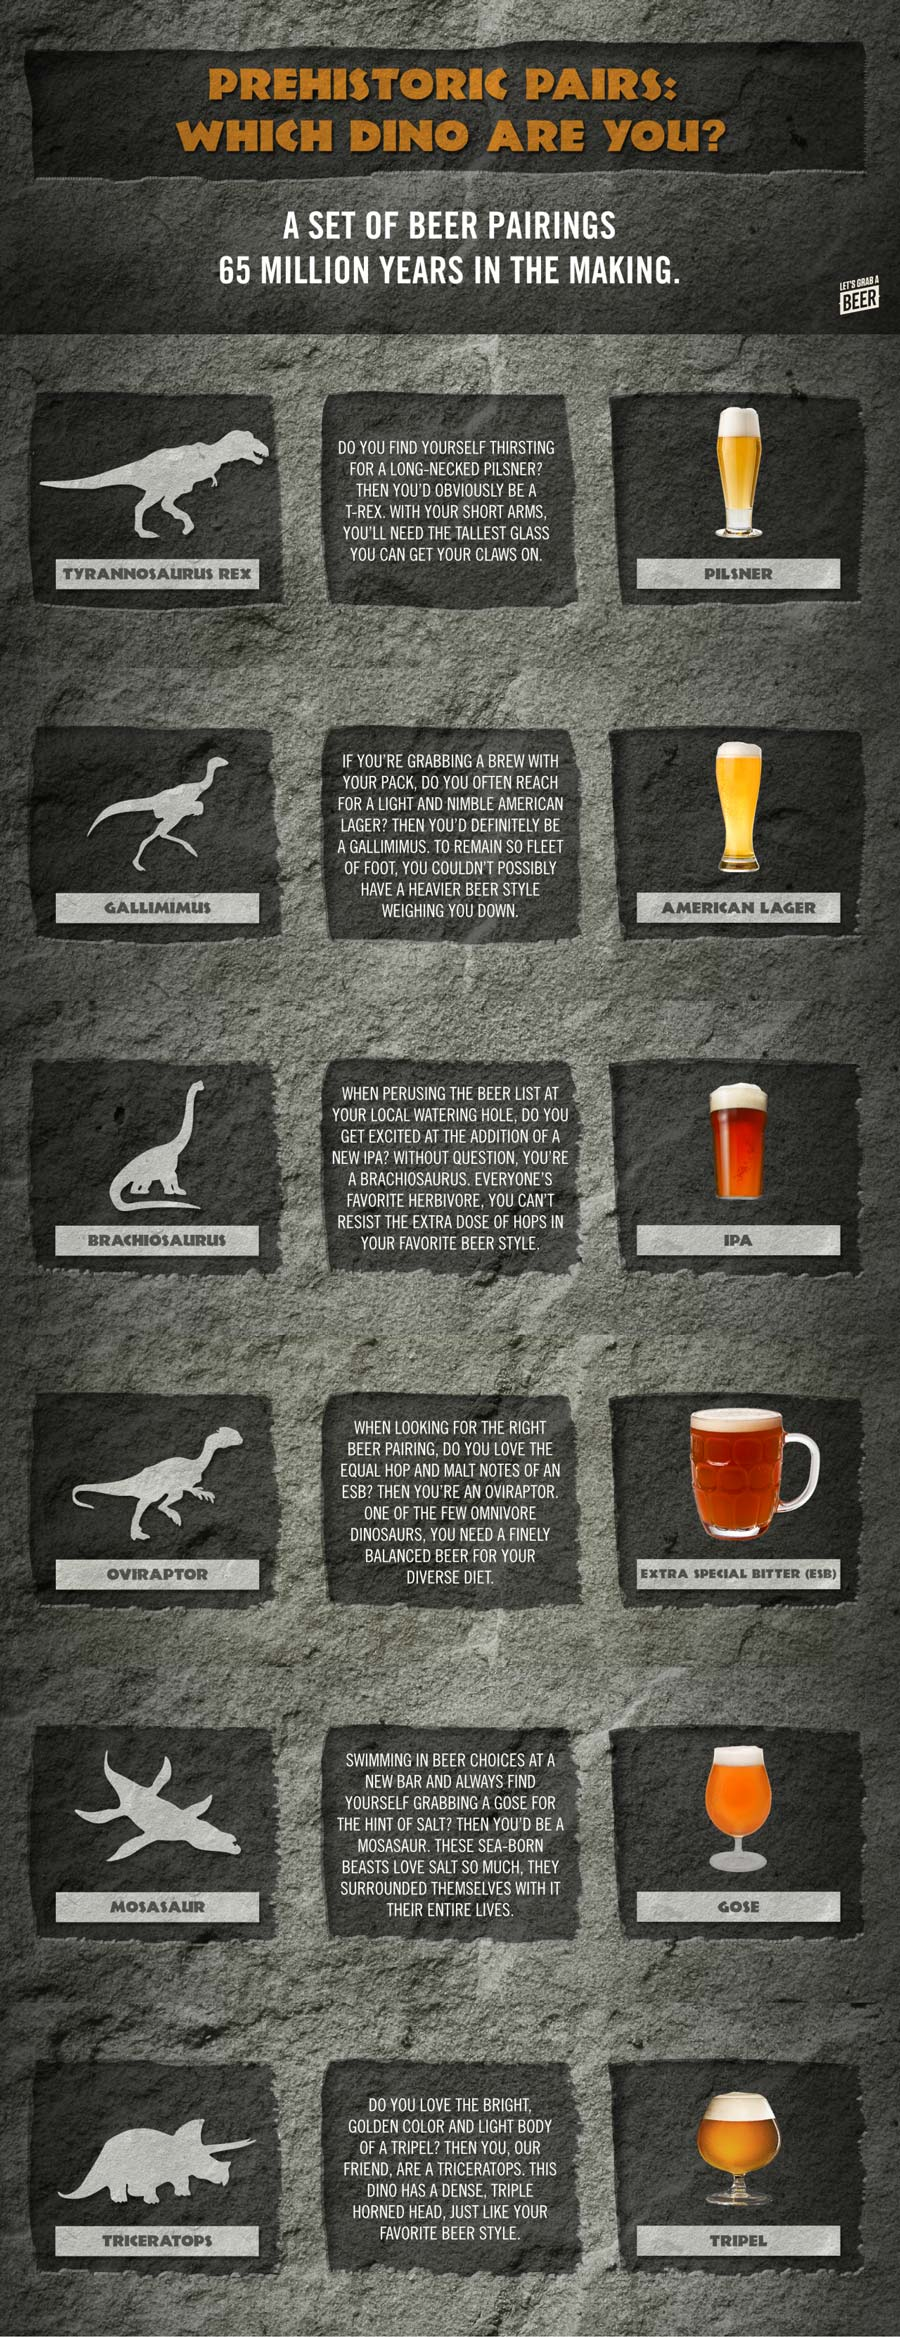 How To Pair Your Favorite Dinosaur With Your Favorite Beer